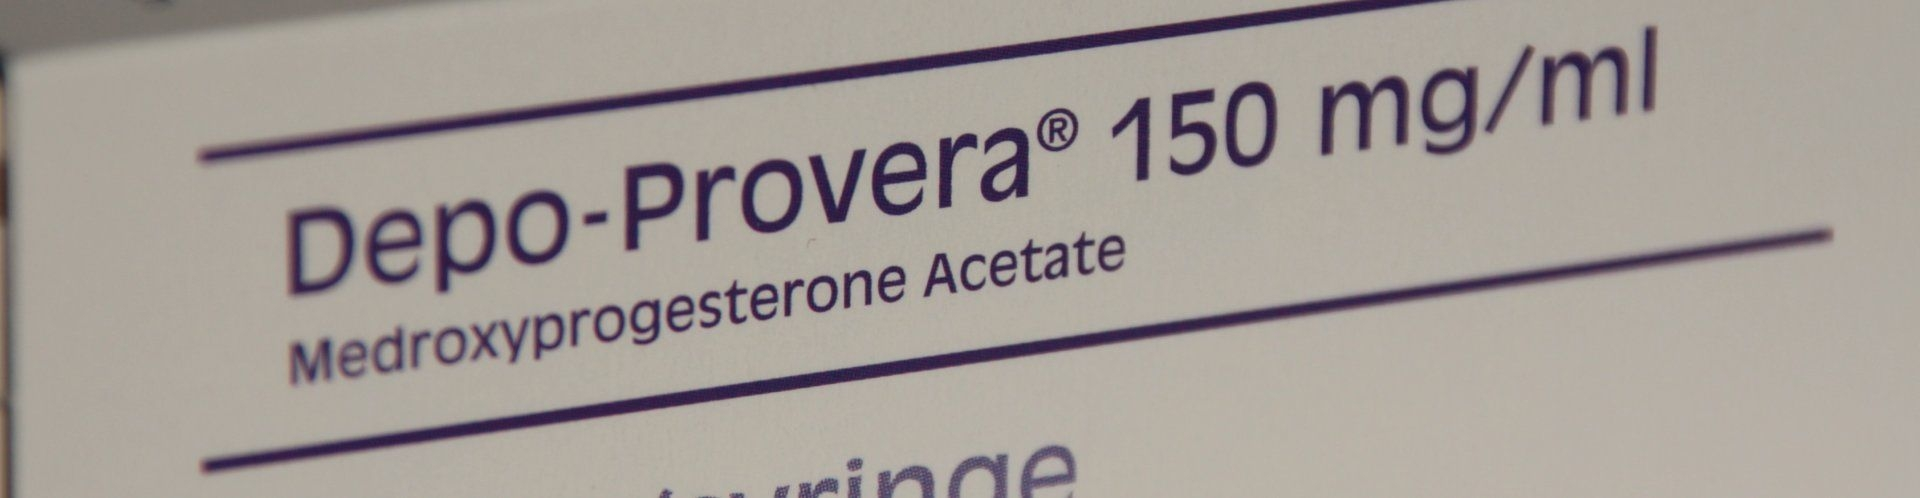 Depo-Provera Dates Calculator - University Health Service